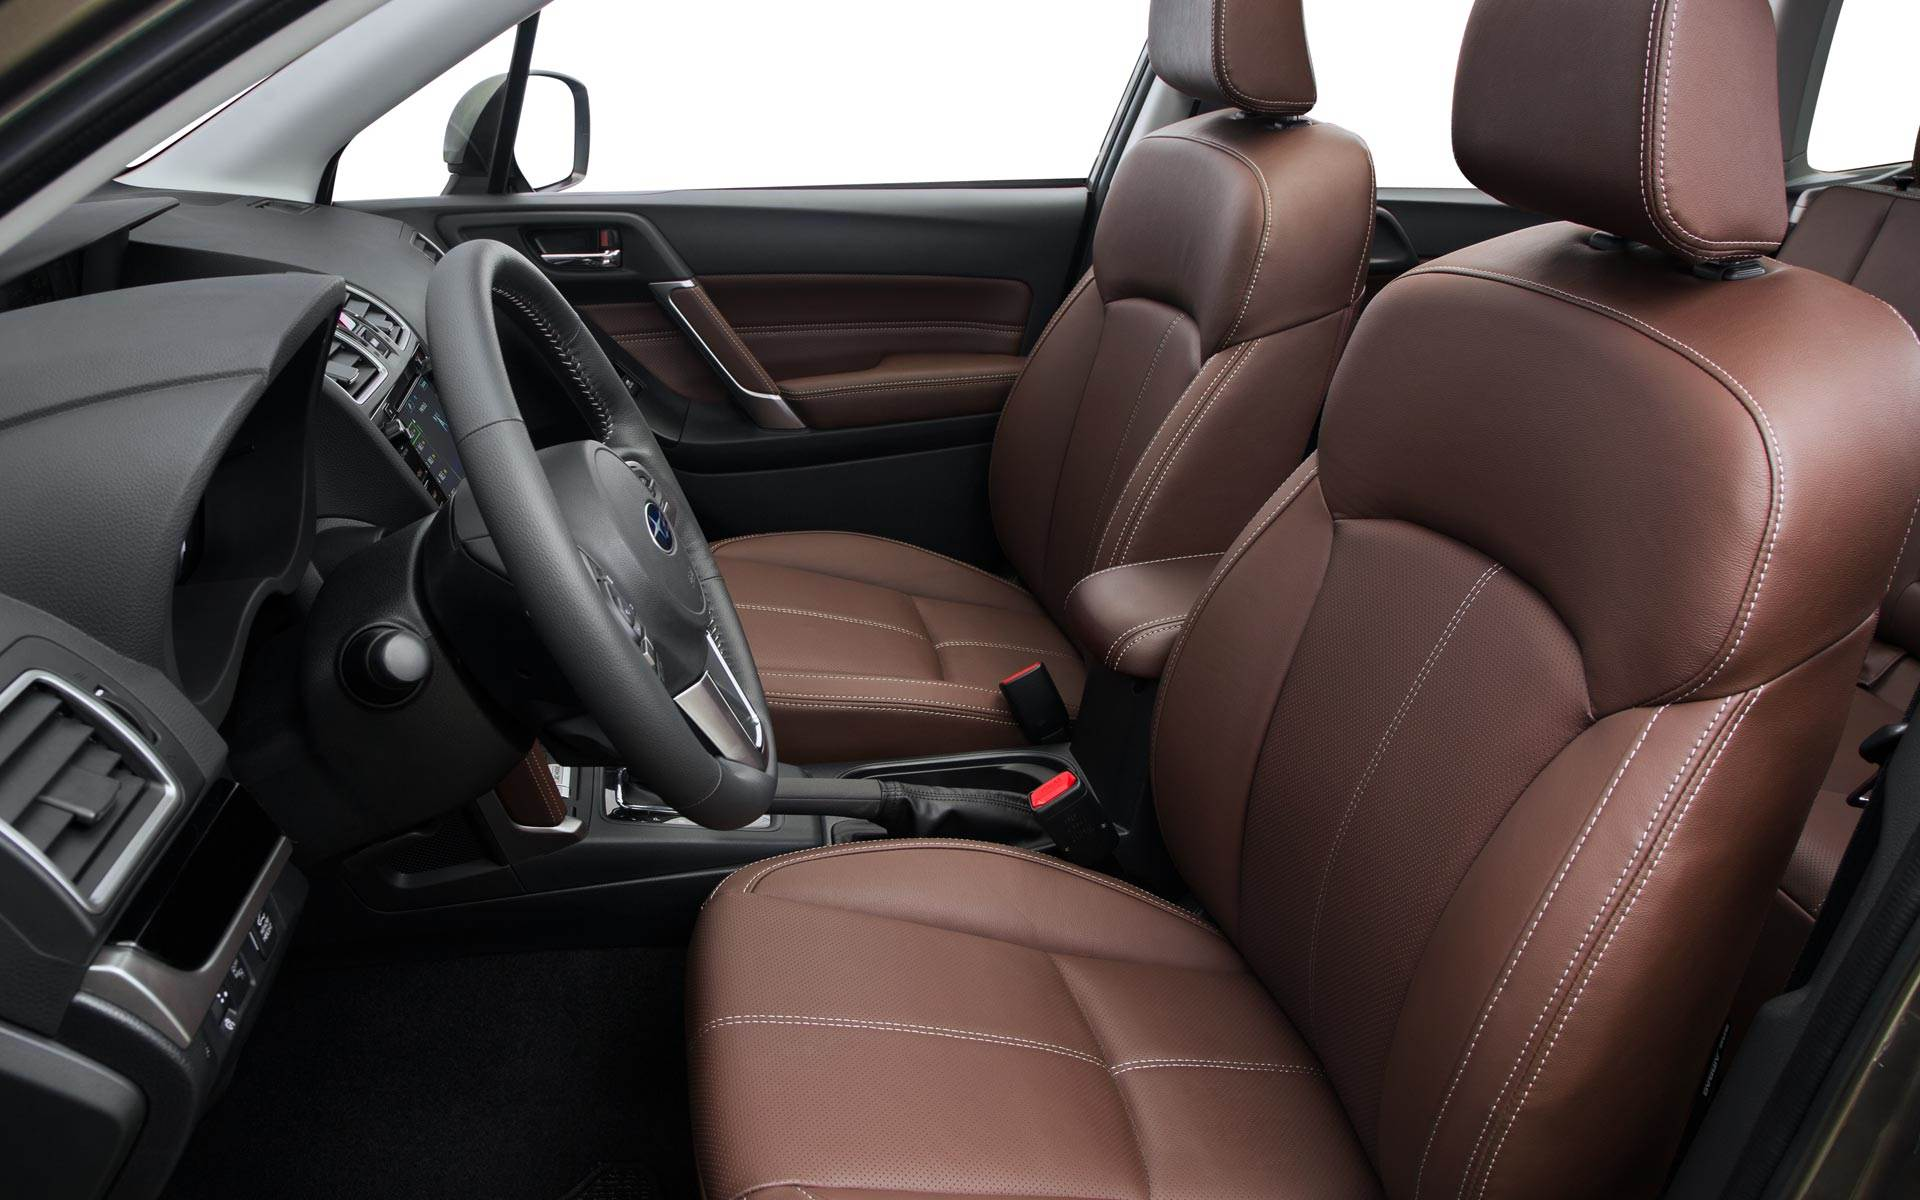 2018 Subaru Forester Black Leather Front Interior